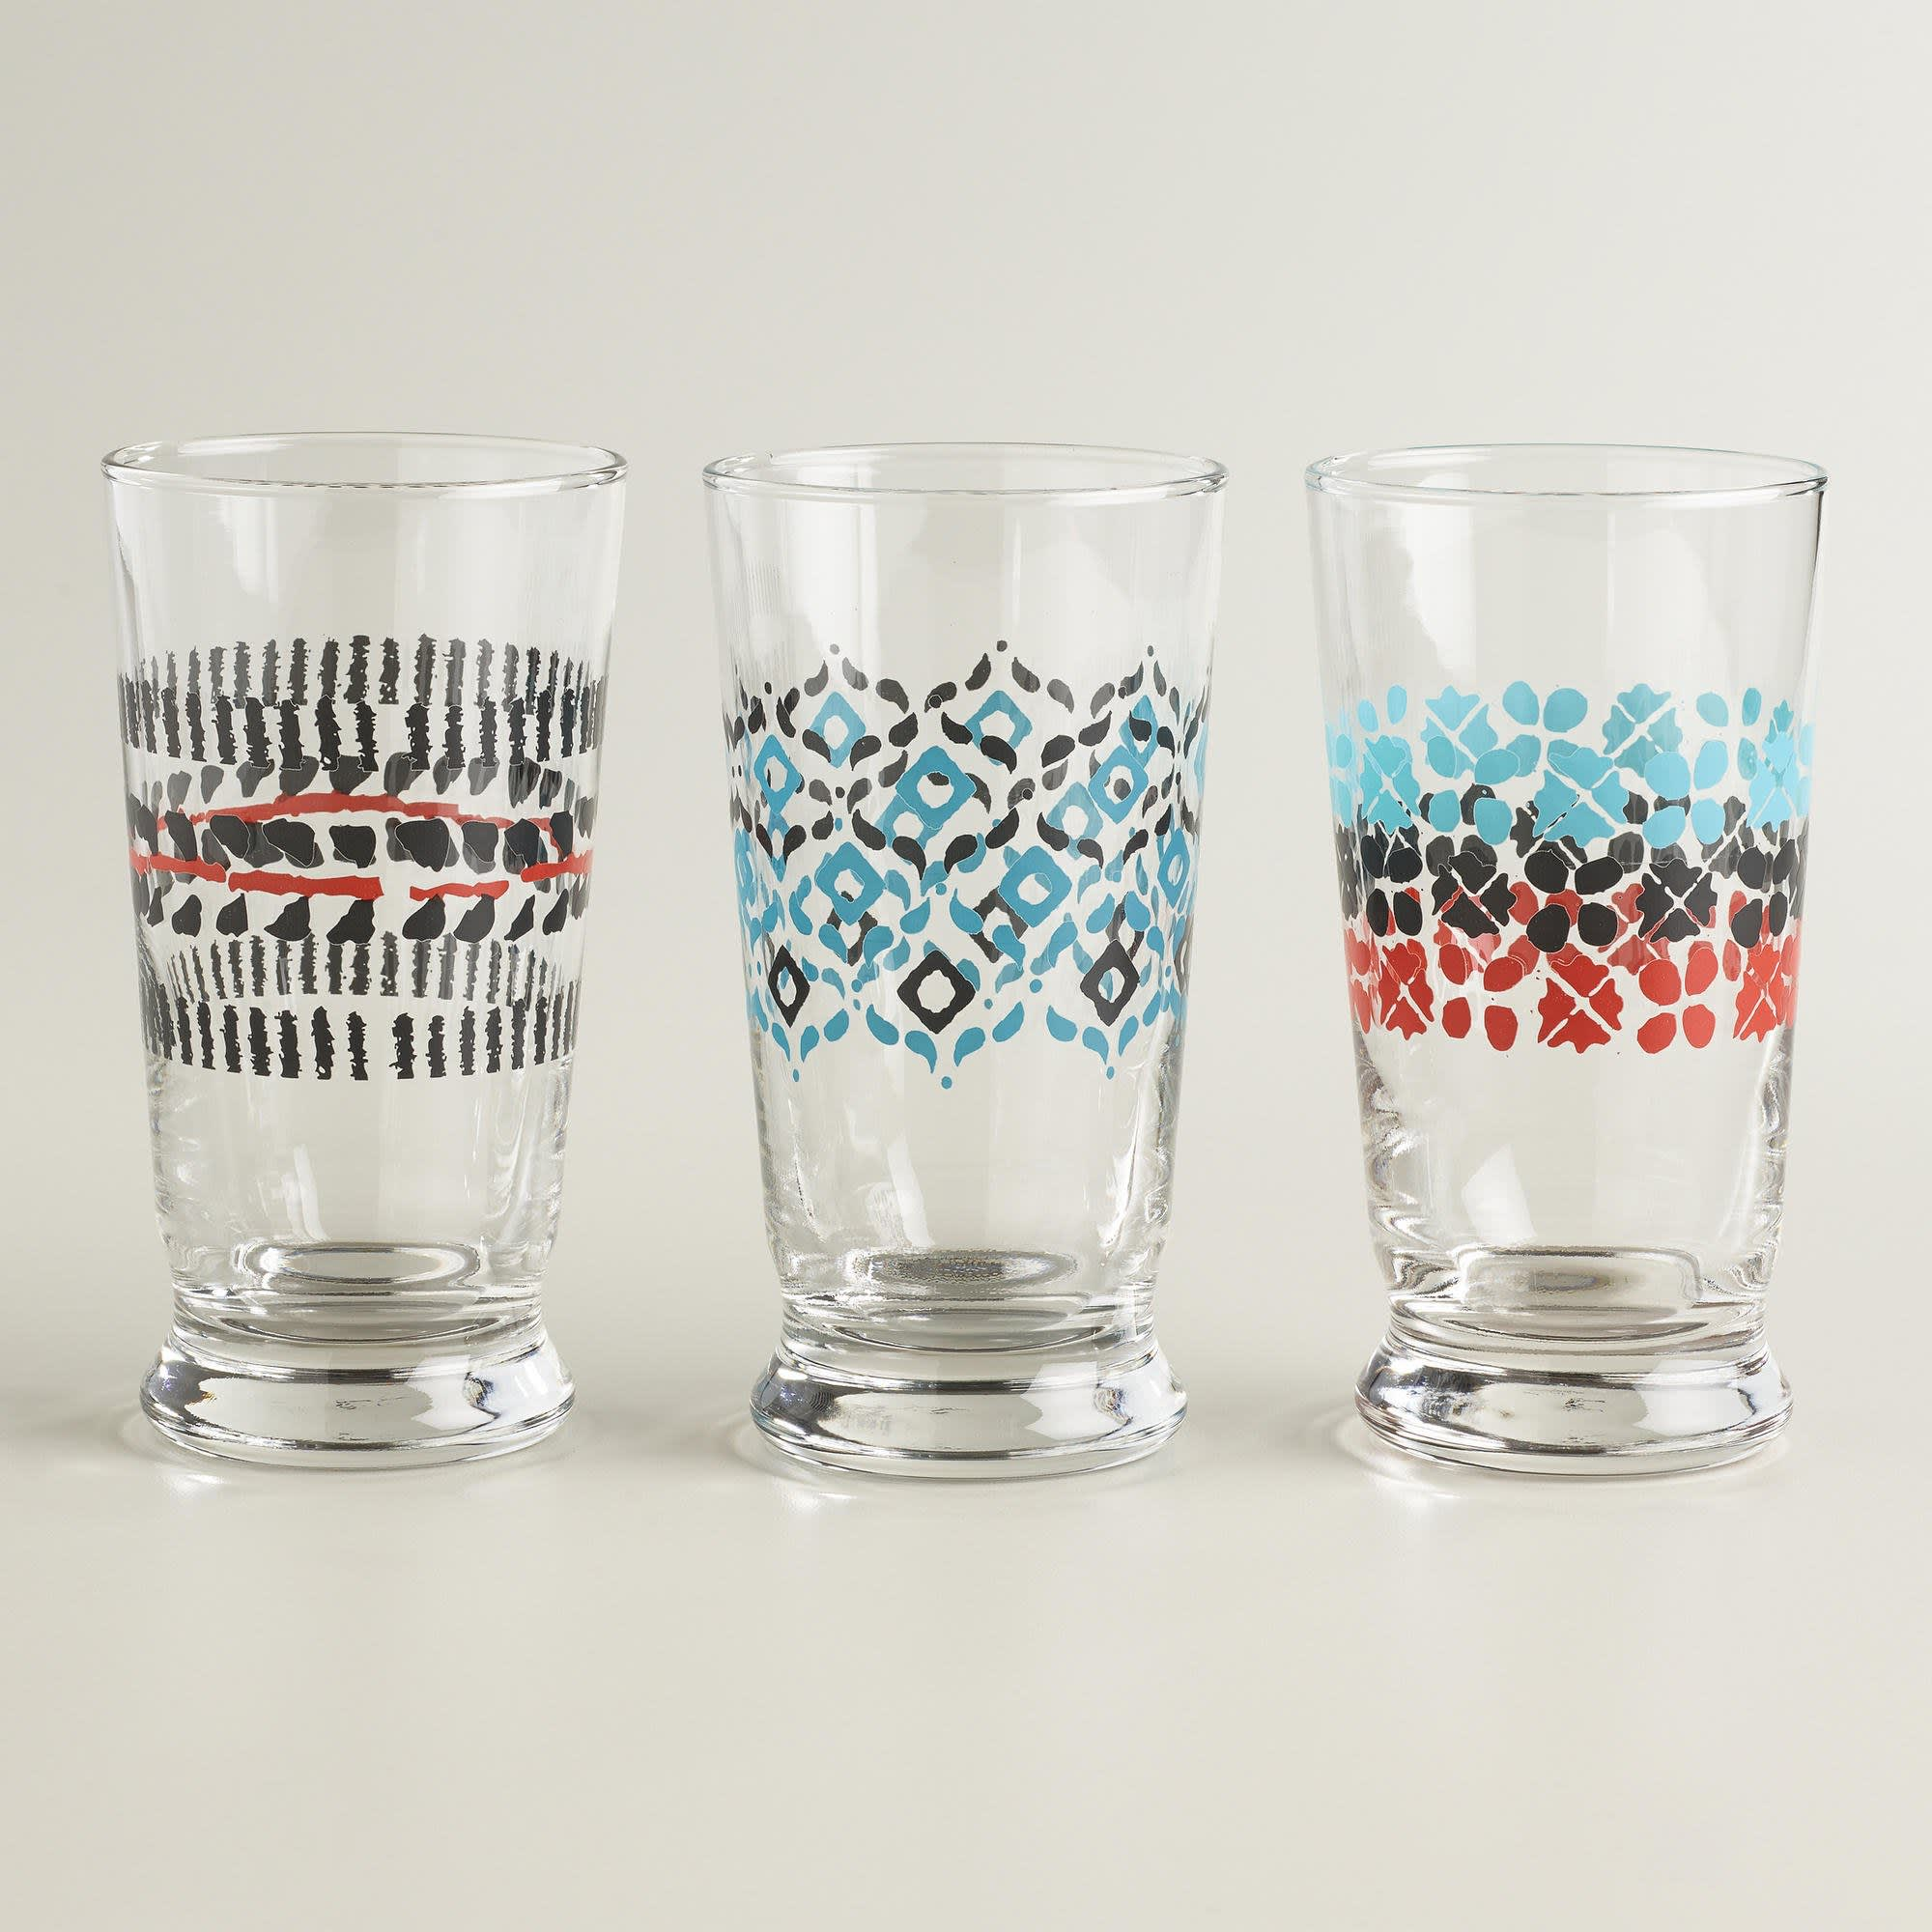 15 Patterned Glasses to Perk up Your Dinner Table: gallery image 14